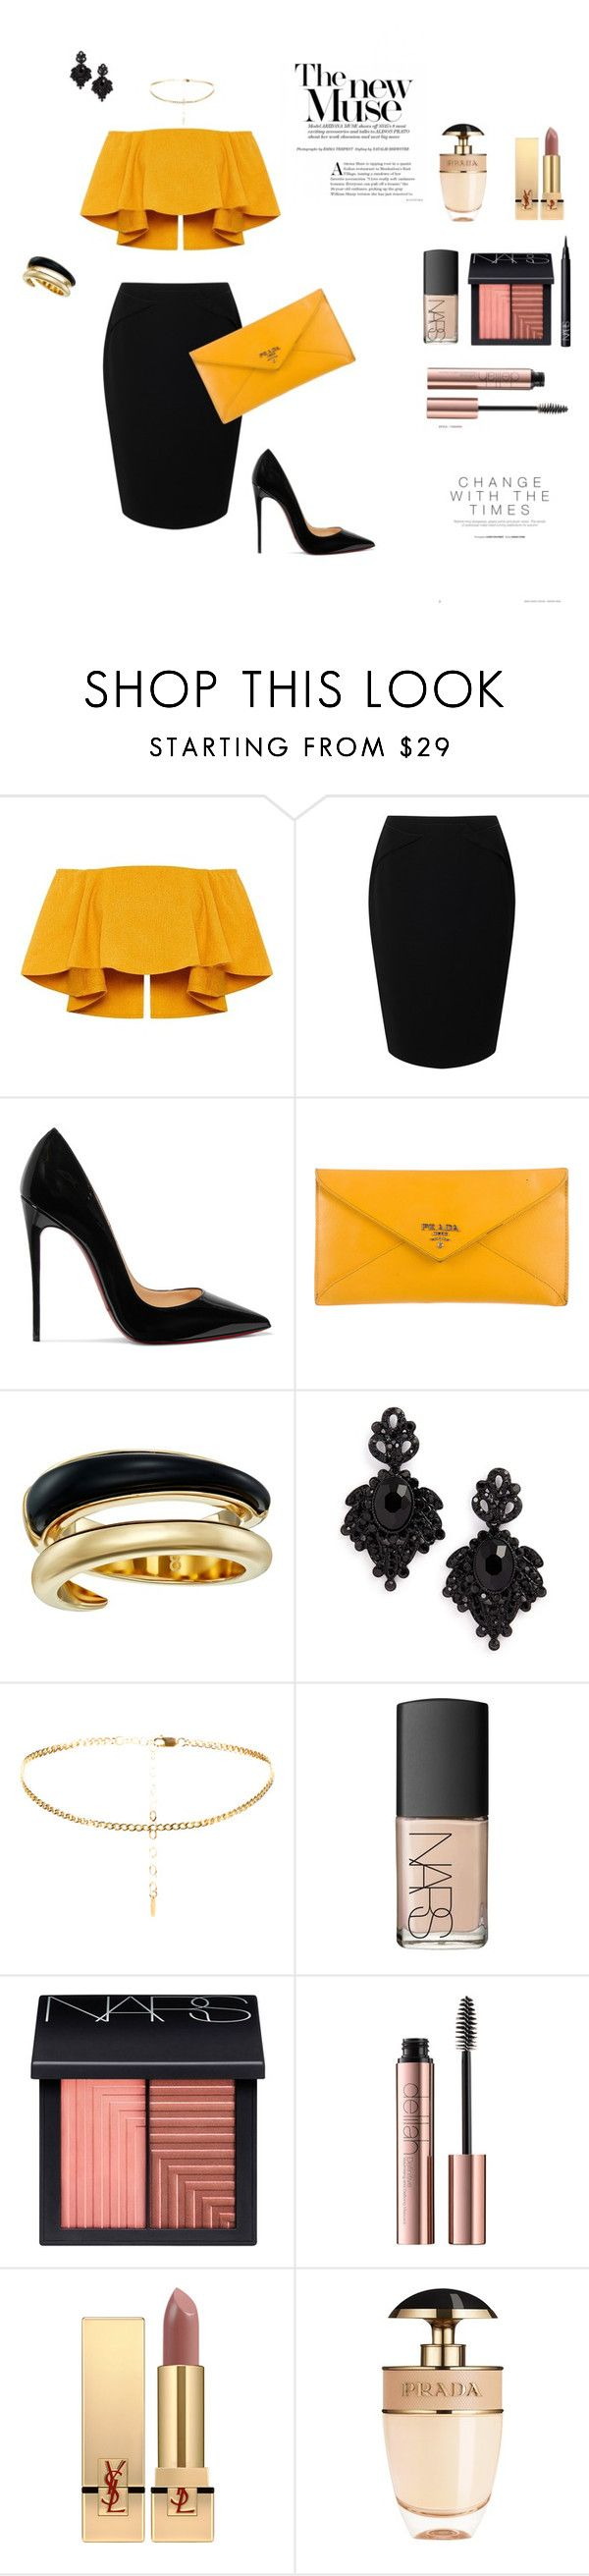 """Classy"" by roxx1993 on Polyvore featuring Jacques Vert, Christian Louboutin, Prada, Michael Kors, Tasha, NARS Cosmetics and Yves Saint Laurent"